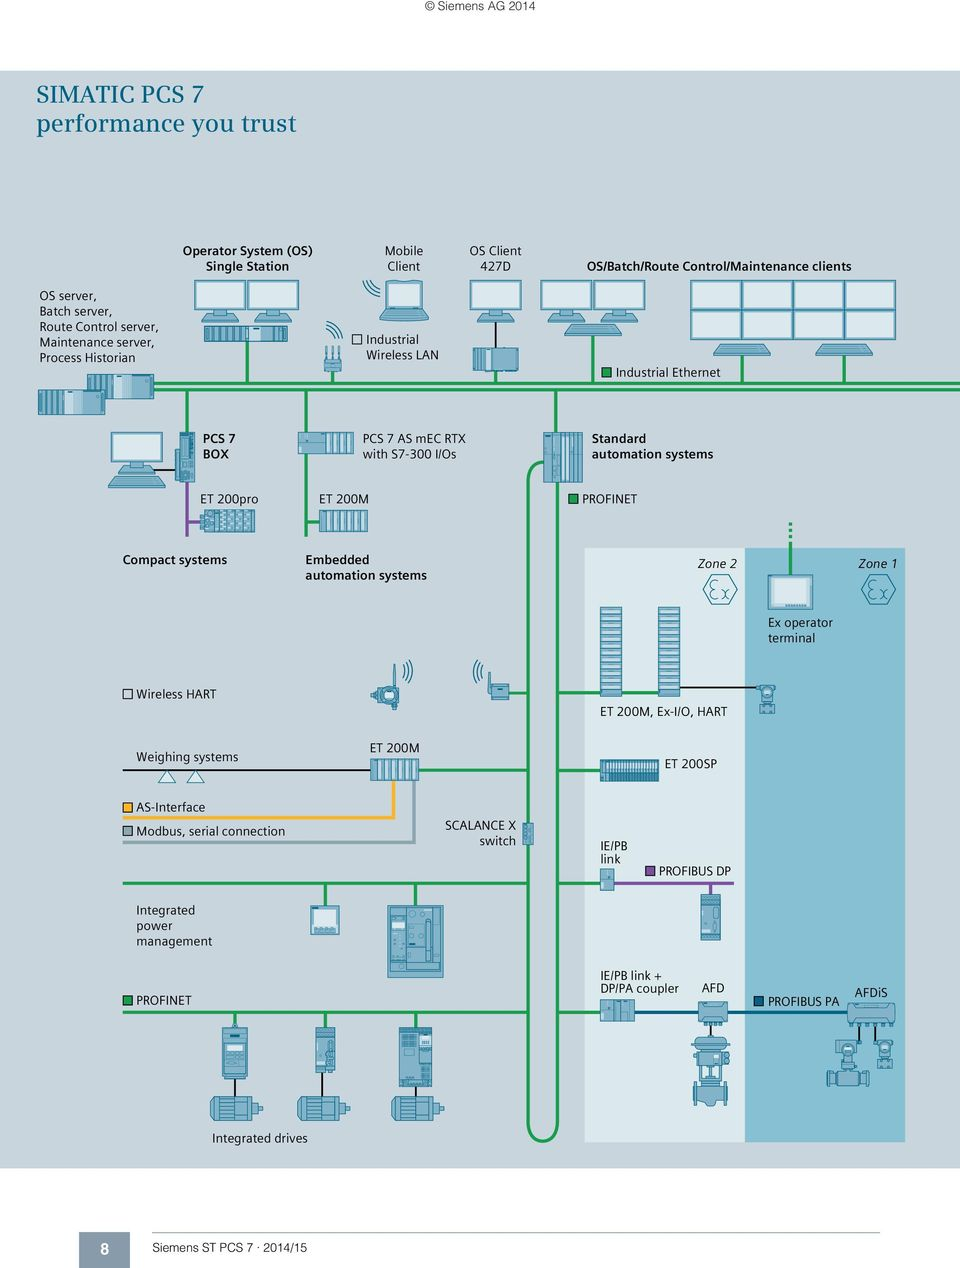 medium resolution of profinet compact systems embedded automation systems zone 2 zone 1 ex operator terminal wireless hart weighing